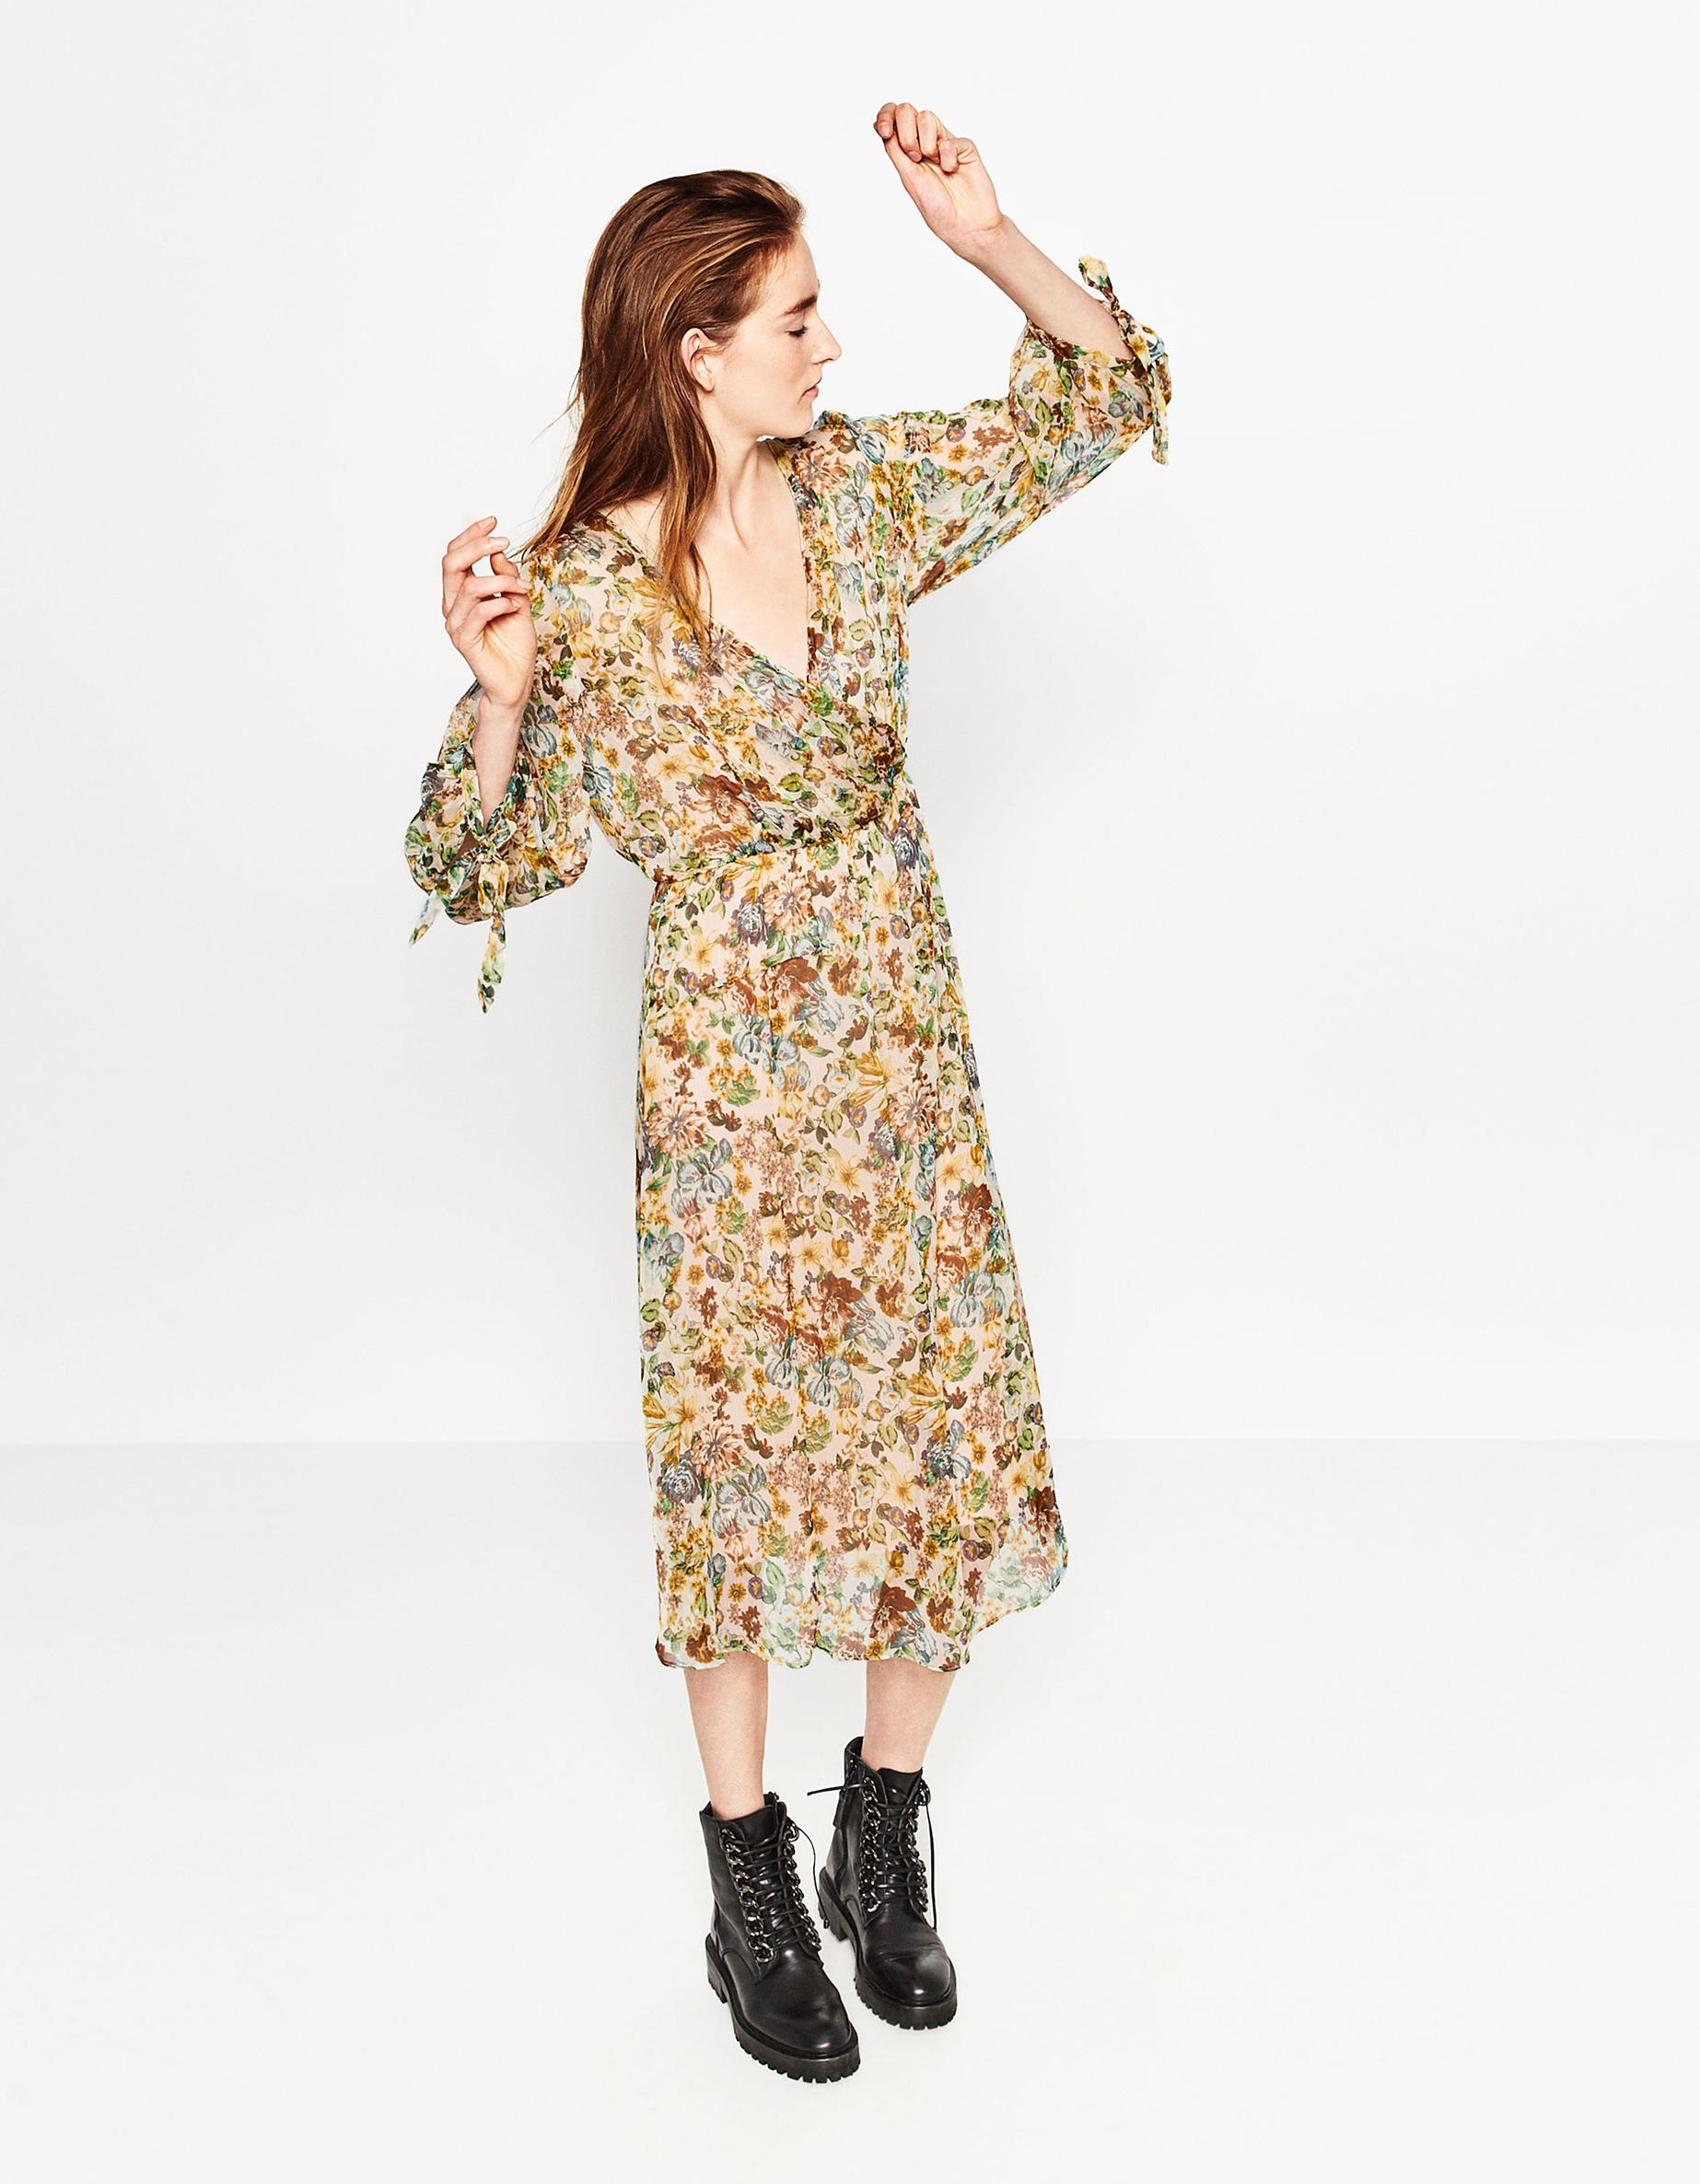 Robes de soiree zara 2018